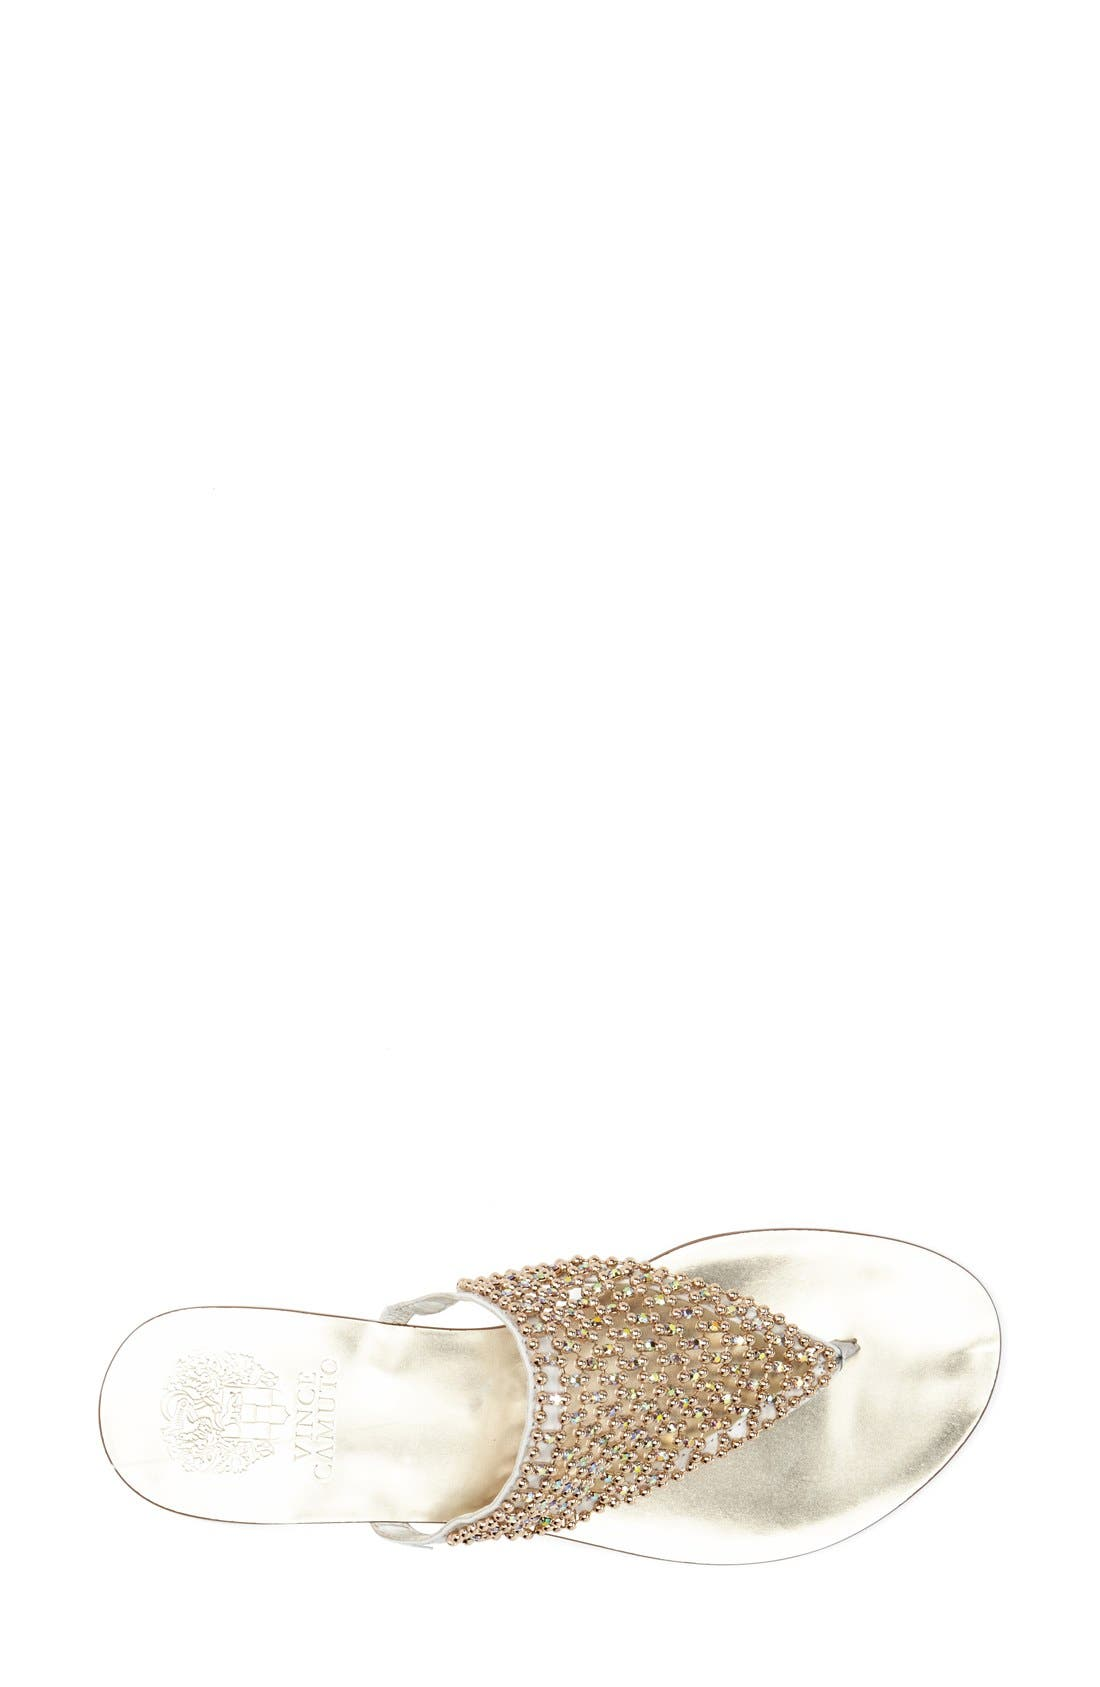 Alternate Image 3  - Vince Camuto 'Mombo' Embellished Thong Sandal (Women)